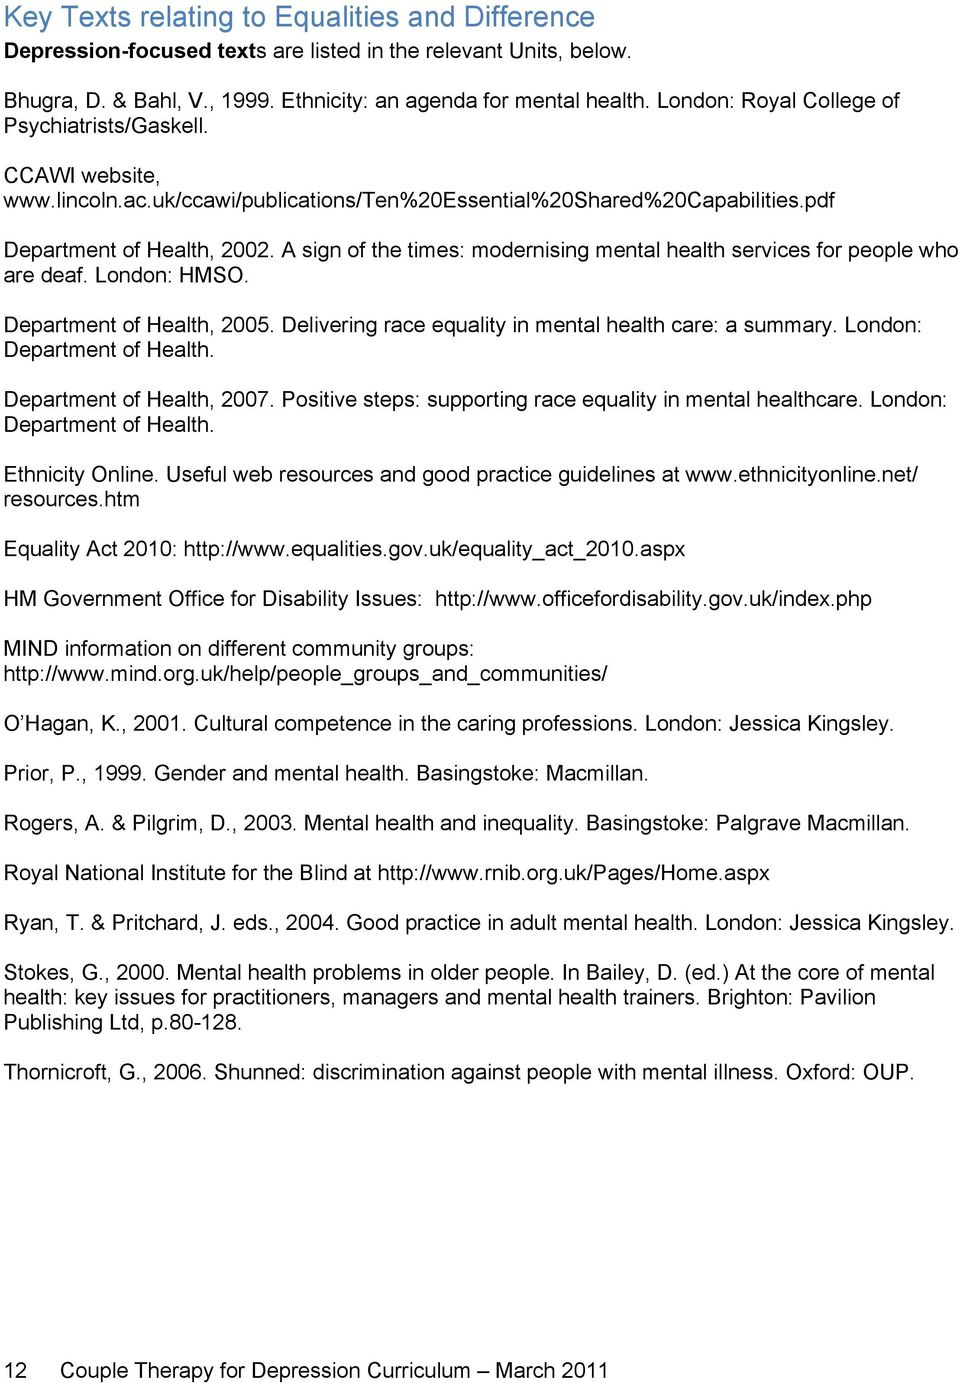 A sign of the times: modernising mental health services for people who are deaf. London: HMSO. Department of Health, 2005. Delivering race equality in mental health care: a summary.